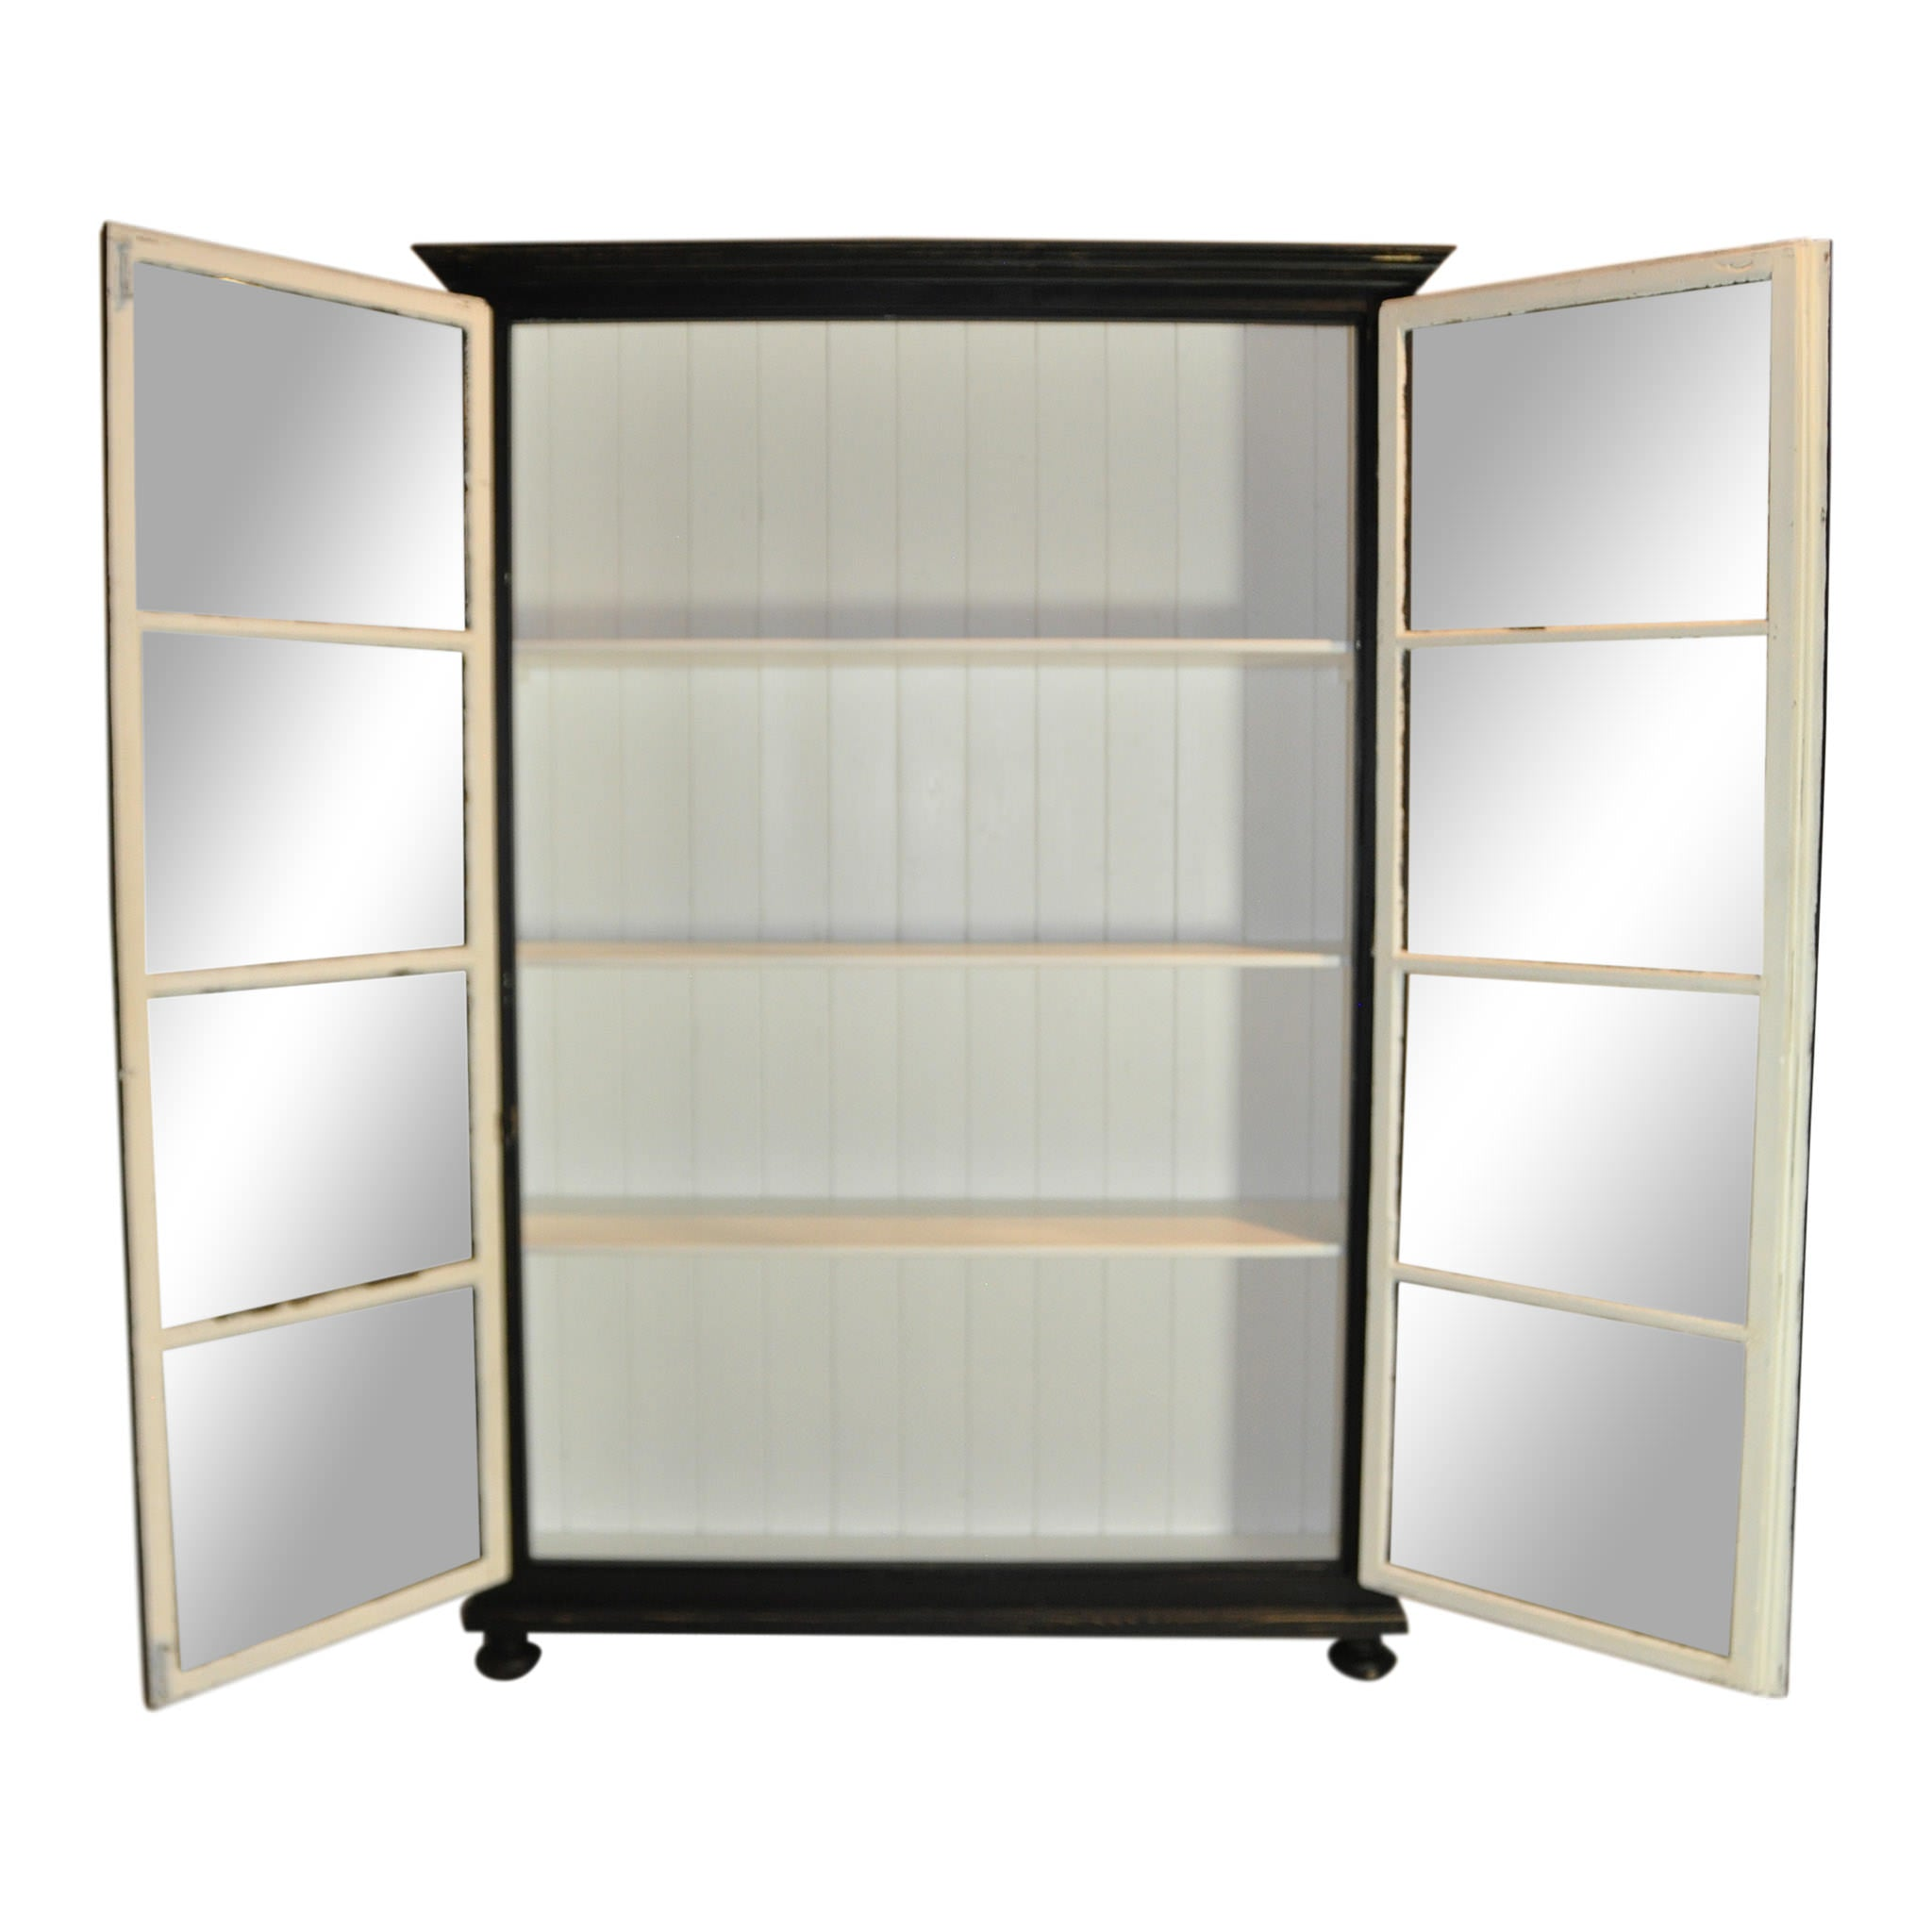 Black and White Cabinet with Glass Doors